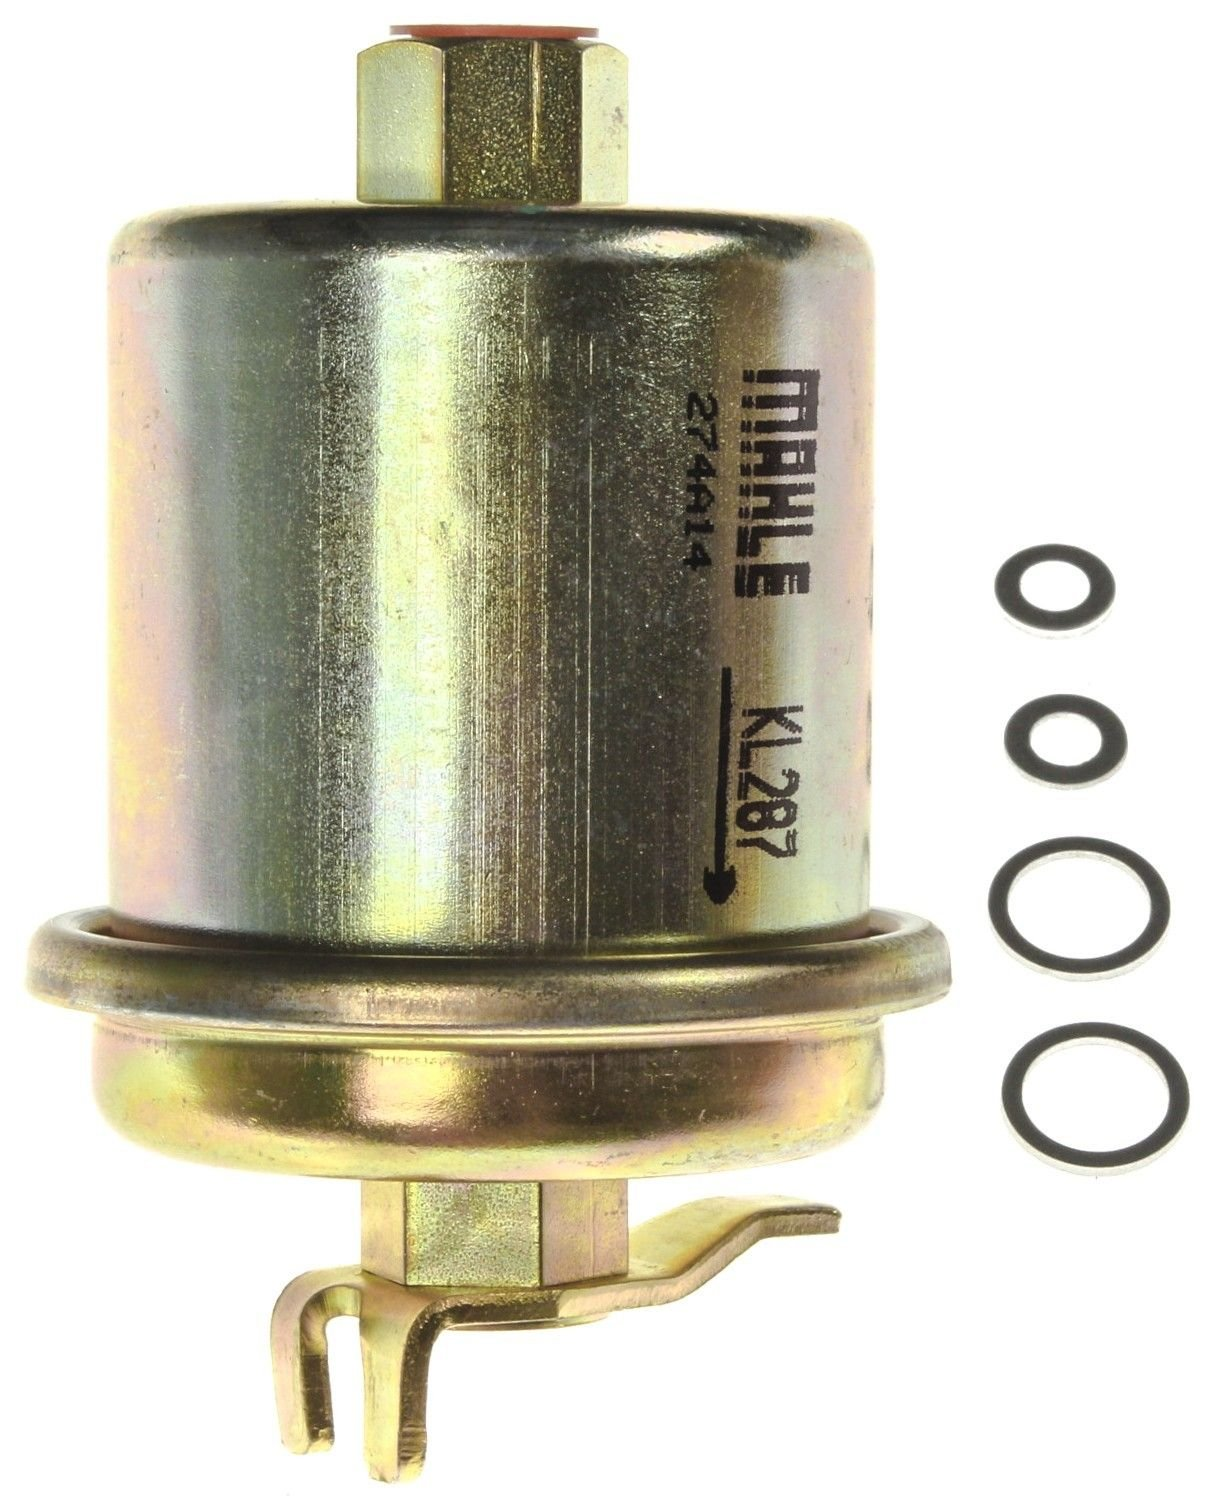 1994 Honda Accord Fuel Filter - In-Line 4 Cyl 2.2L (Mahle KL 287) Filter  Type In-line Fuel Filter .